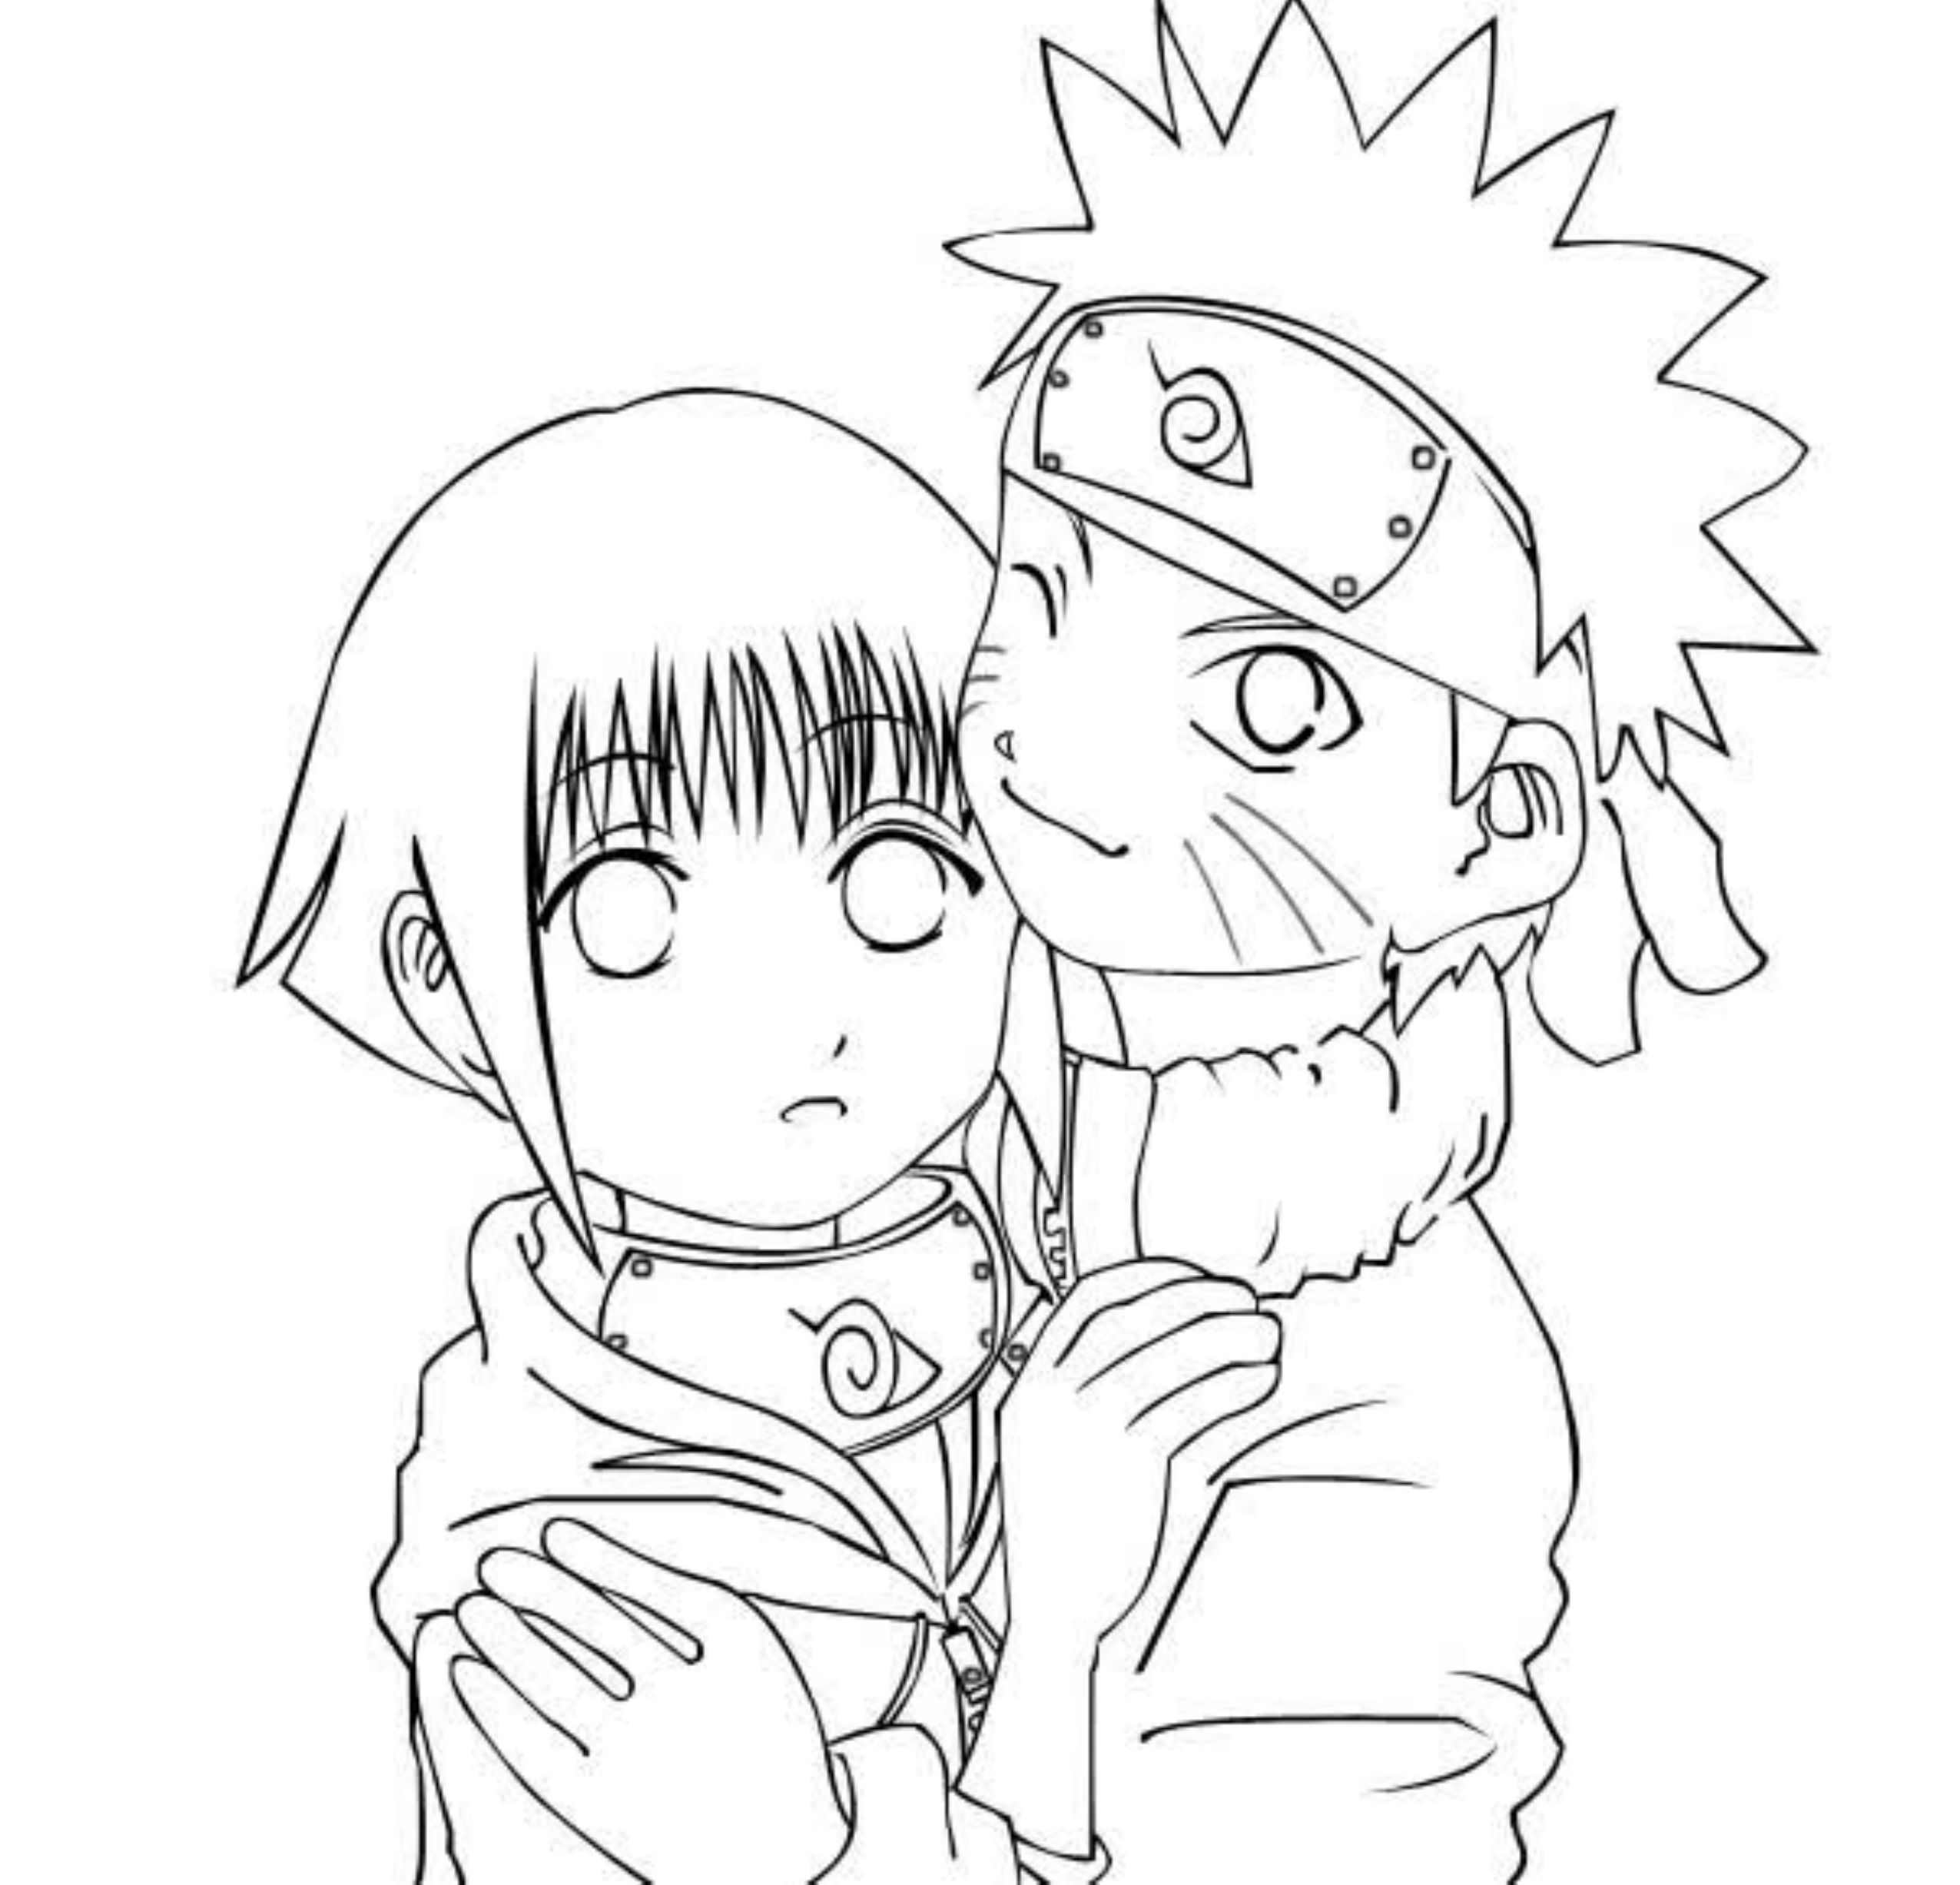 naruto colouring pages naruto shippuden coloring pages to download and print for free colouring pages naruto